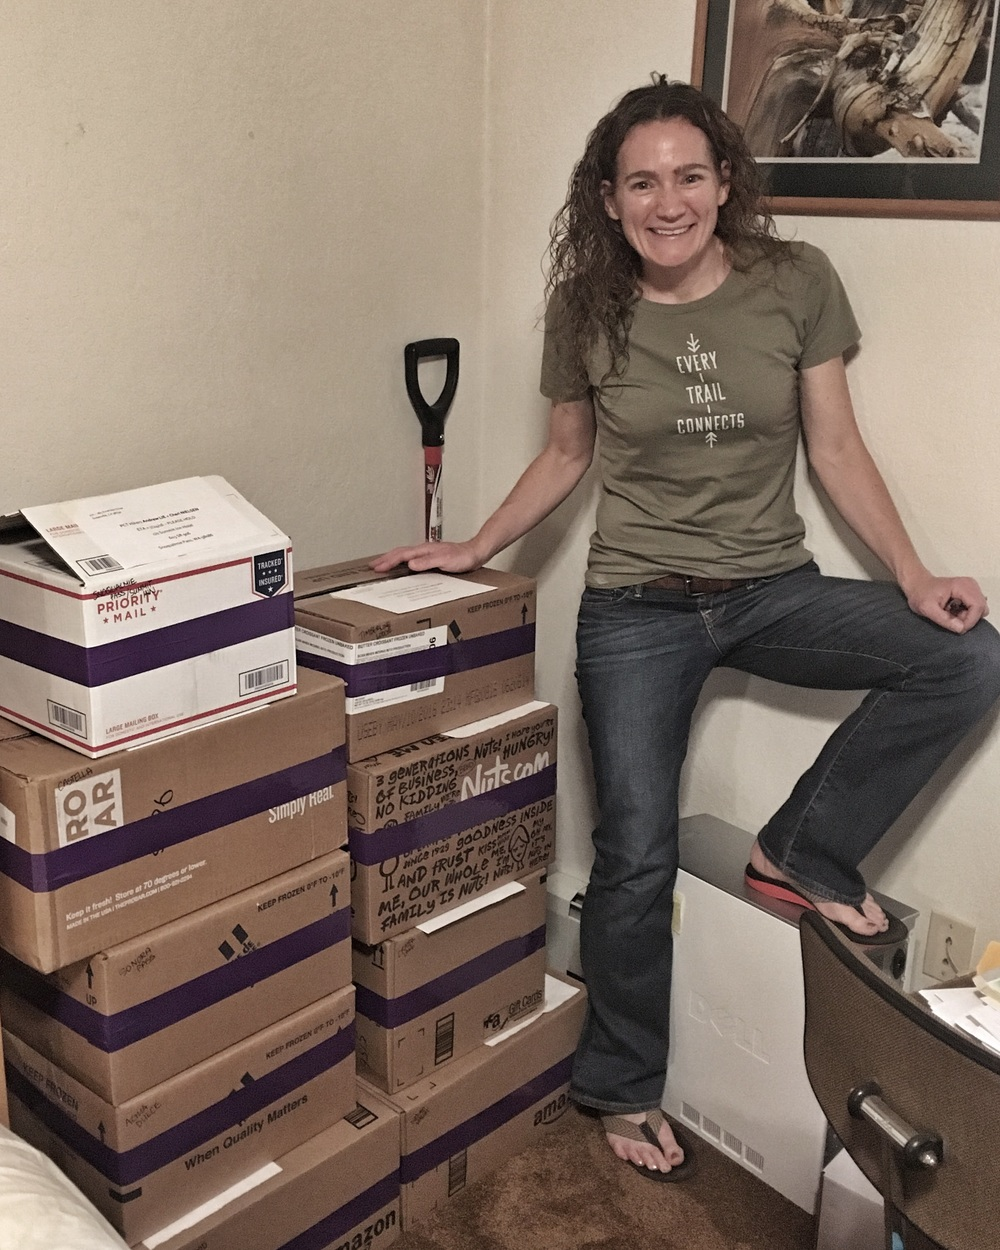 Nine maildrop re-supply boxes ready to be sent out over the course of this summer and fall during our PCT thru-hike